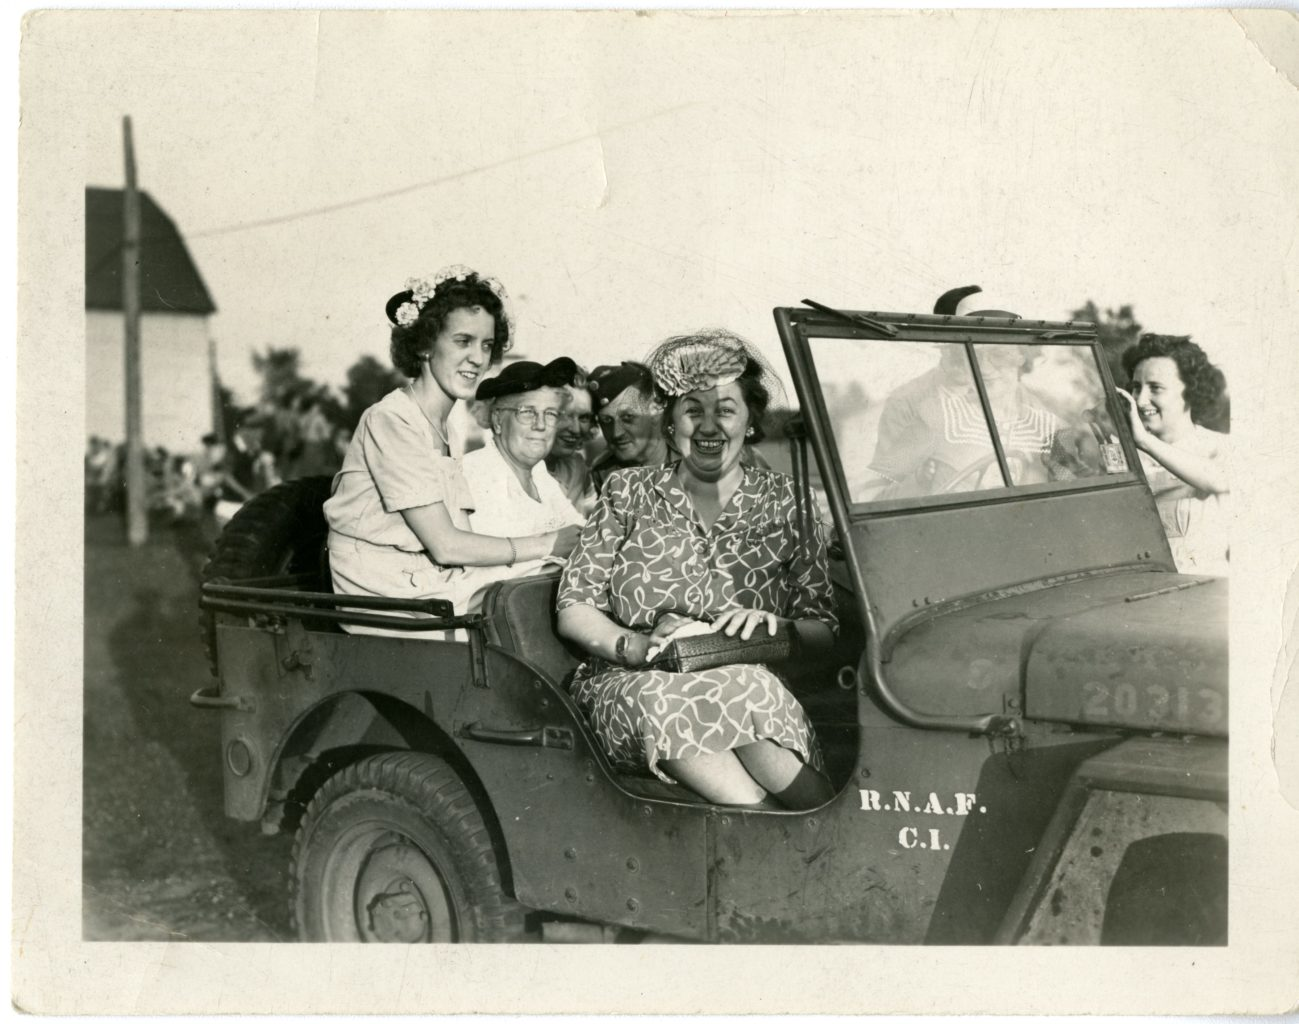 Four women and a man in a jeep.